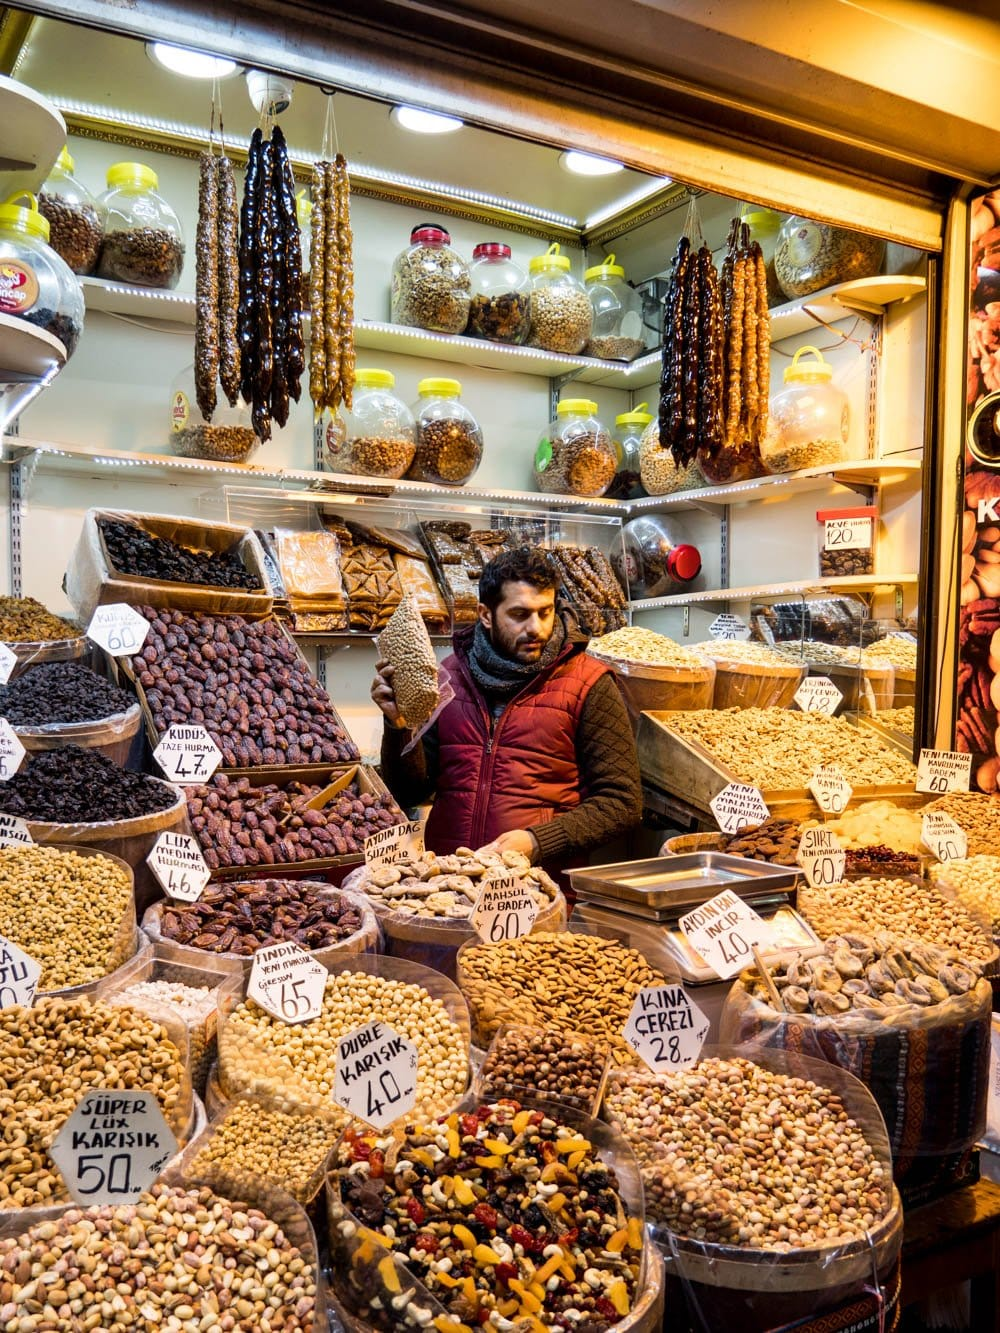 Nut trader at the entrance of the Istanbul spice market (Misir carsisi) / A kitchen in Istanbul